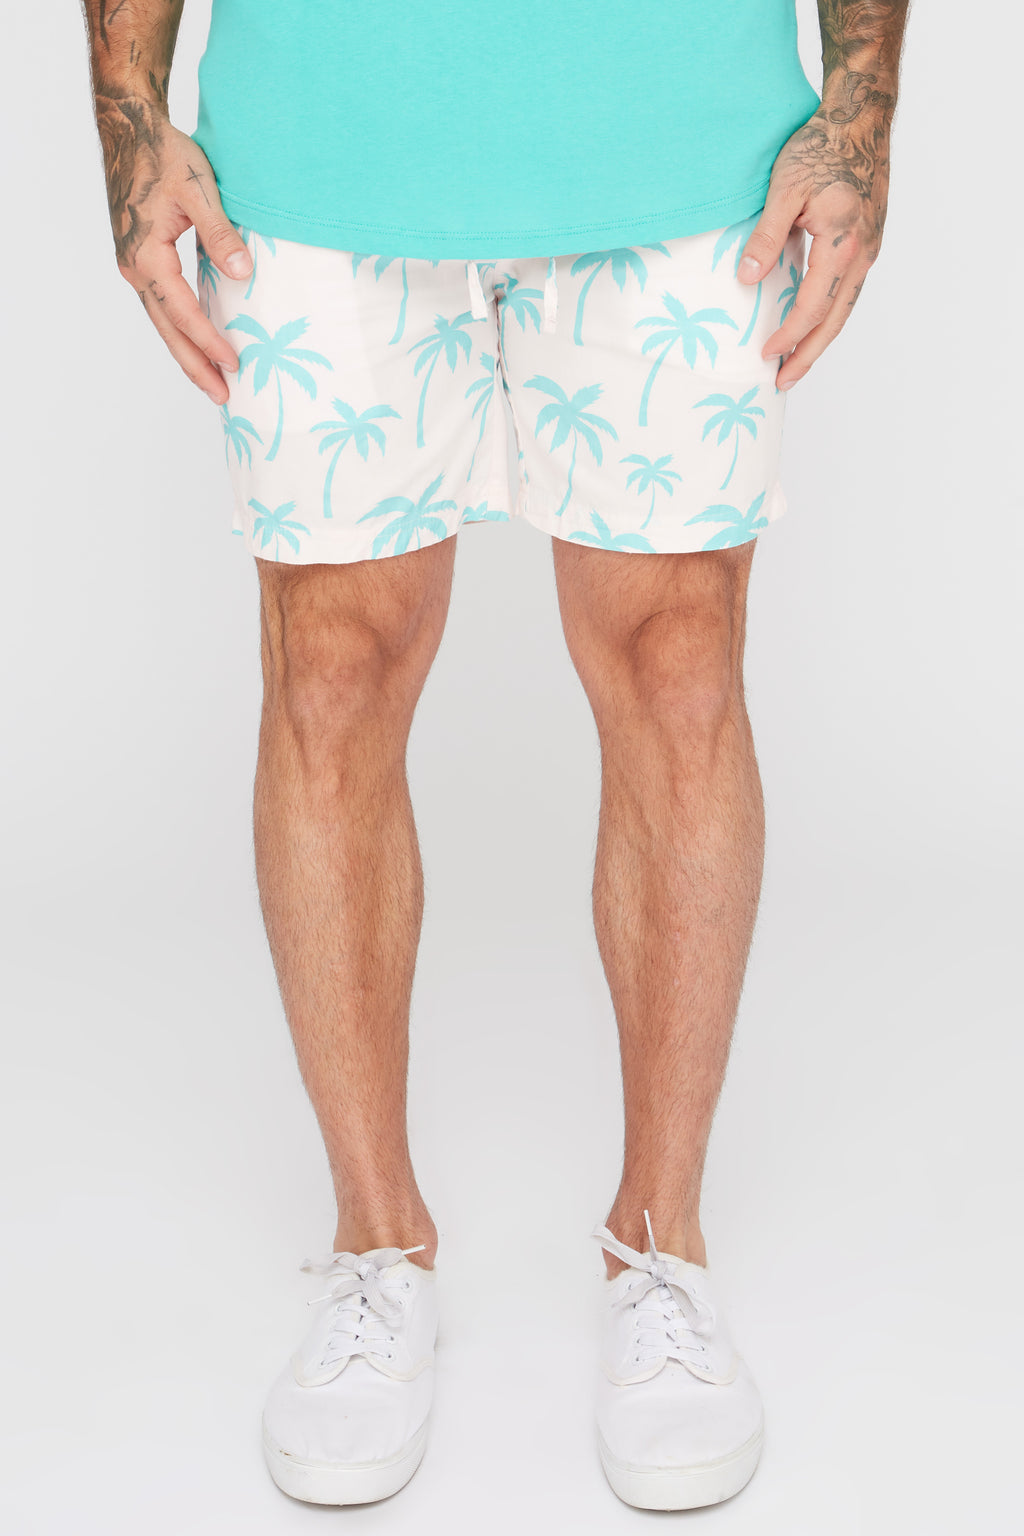 West49 Mens Palm Tree Print Pull-On Shorts